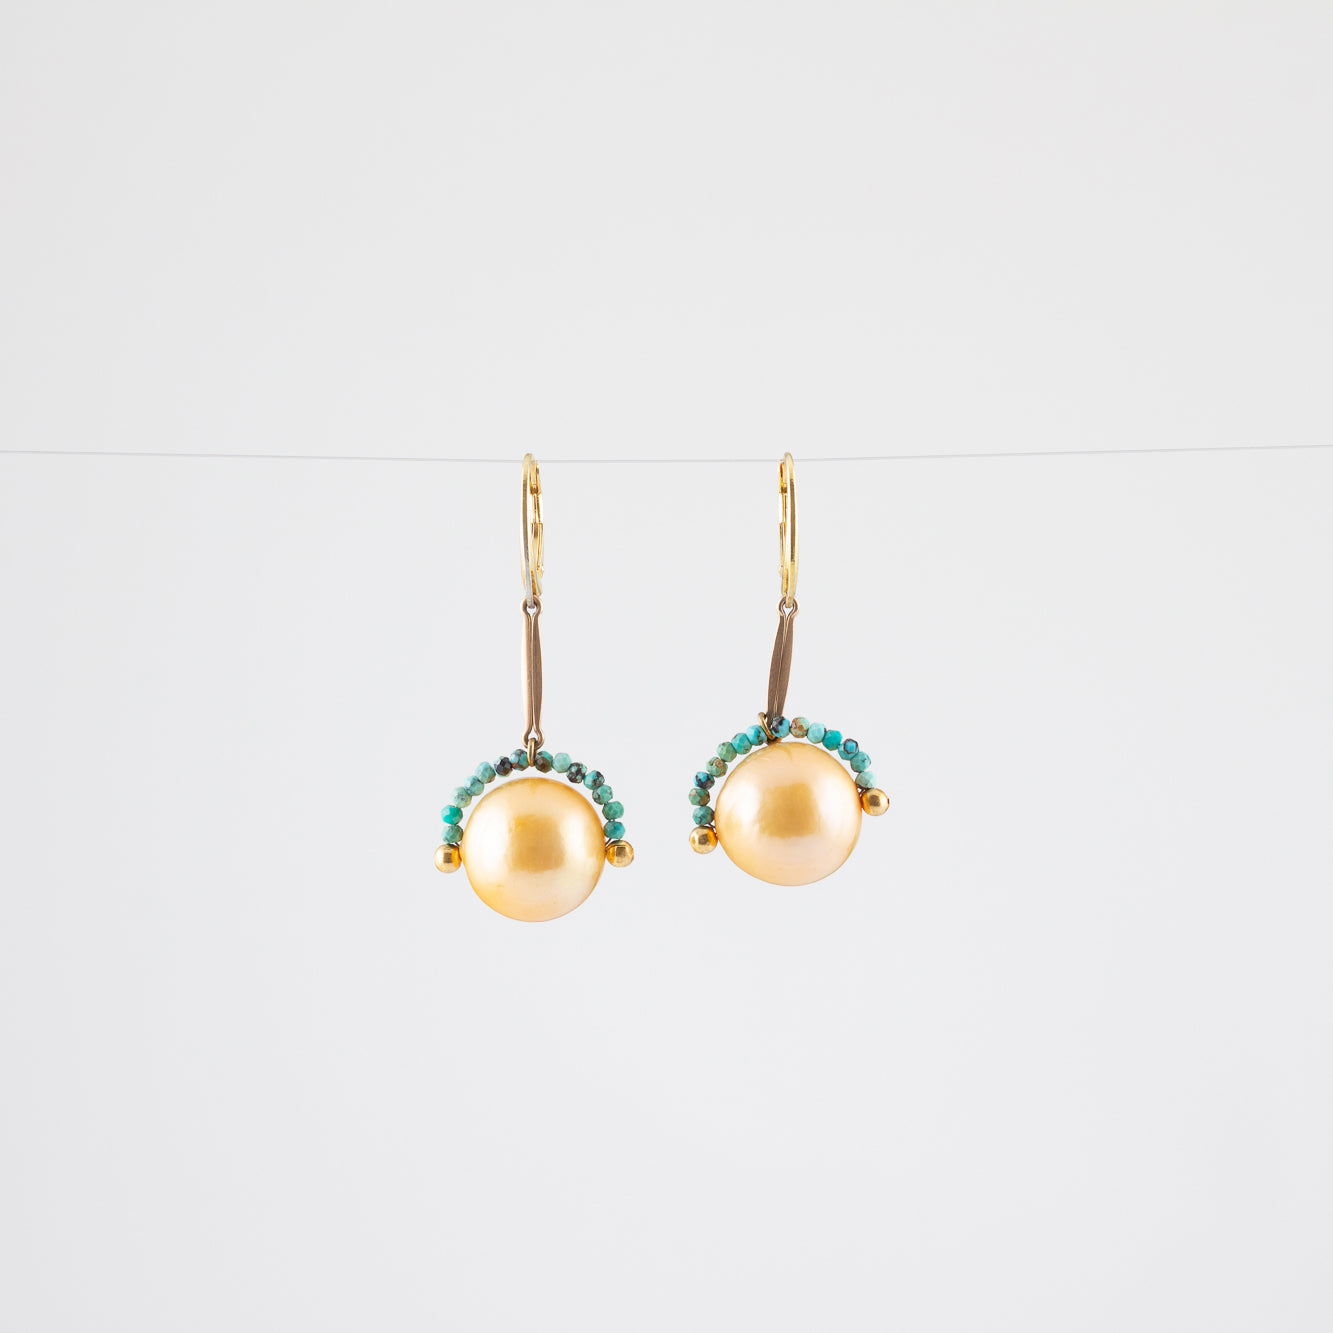 NOISE CANCELING PEARL EARRINGS // TURQUOISE